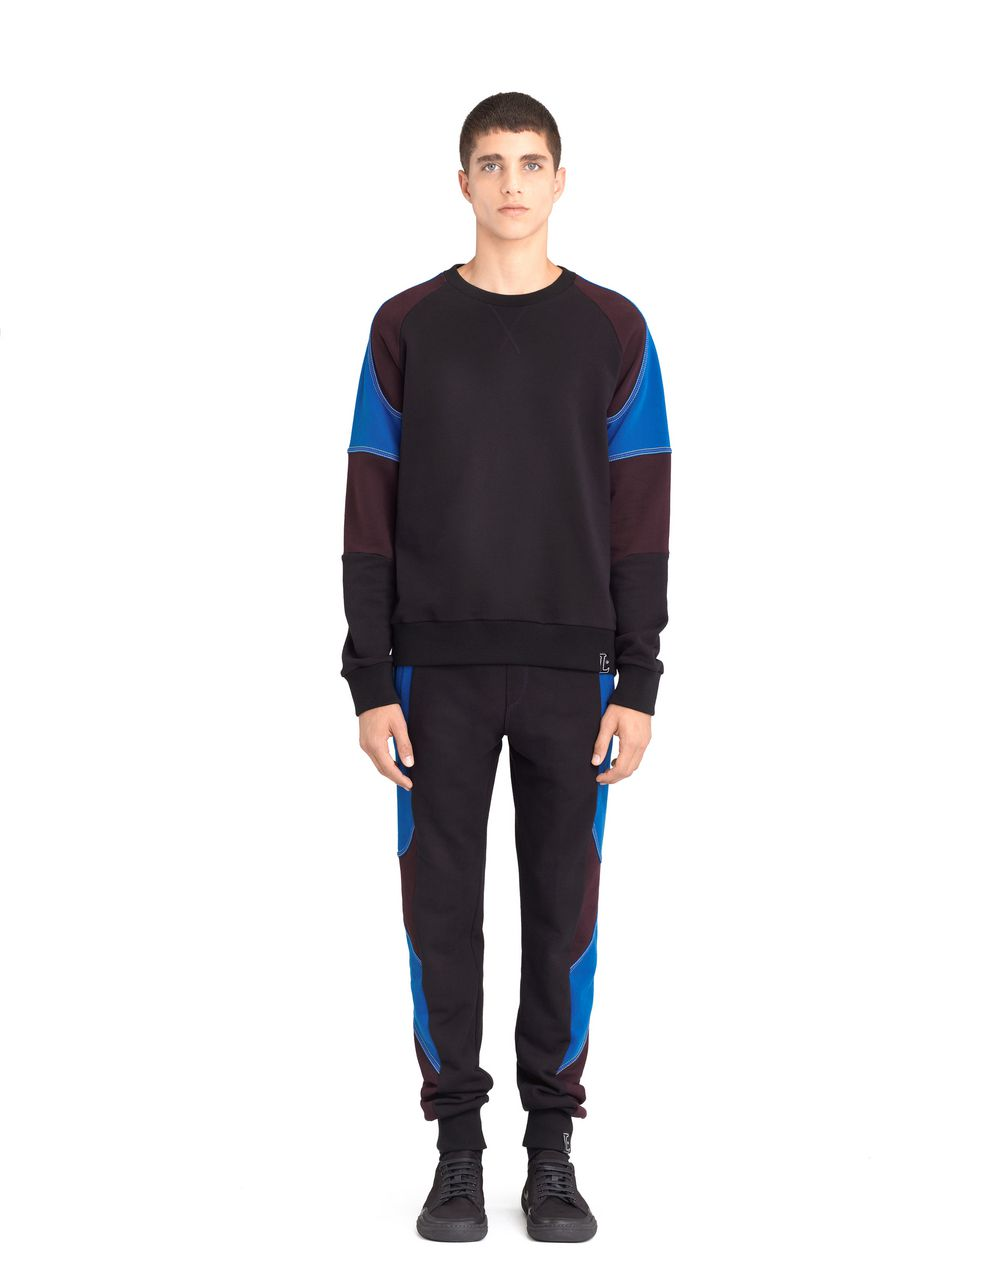 COLOR-BLOCK JERSEY PANTS - Lanvin